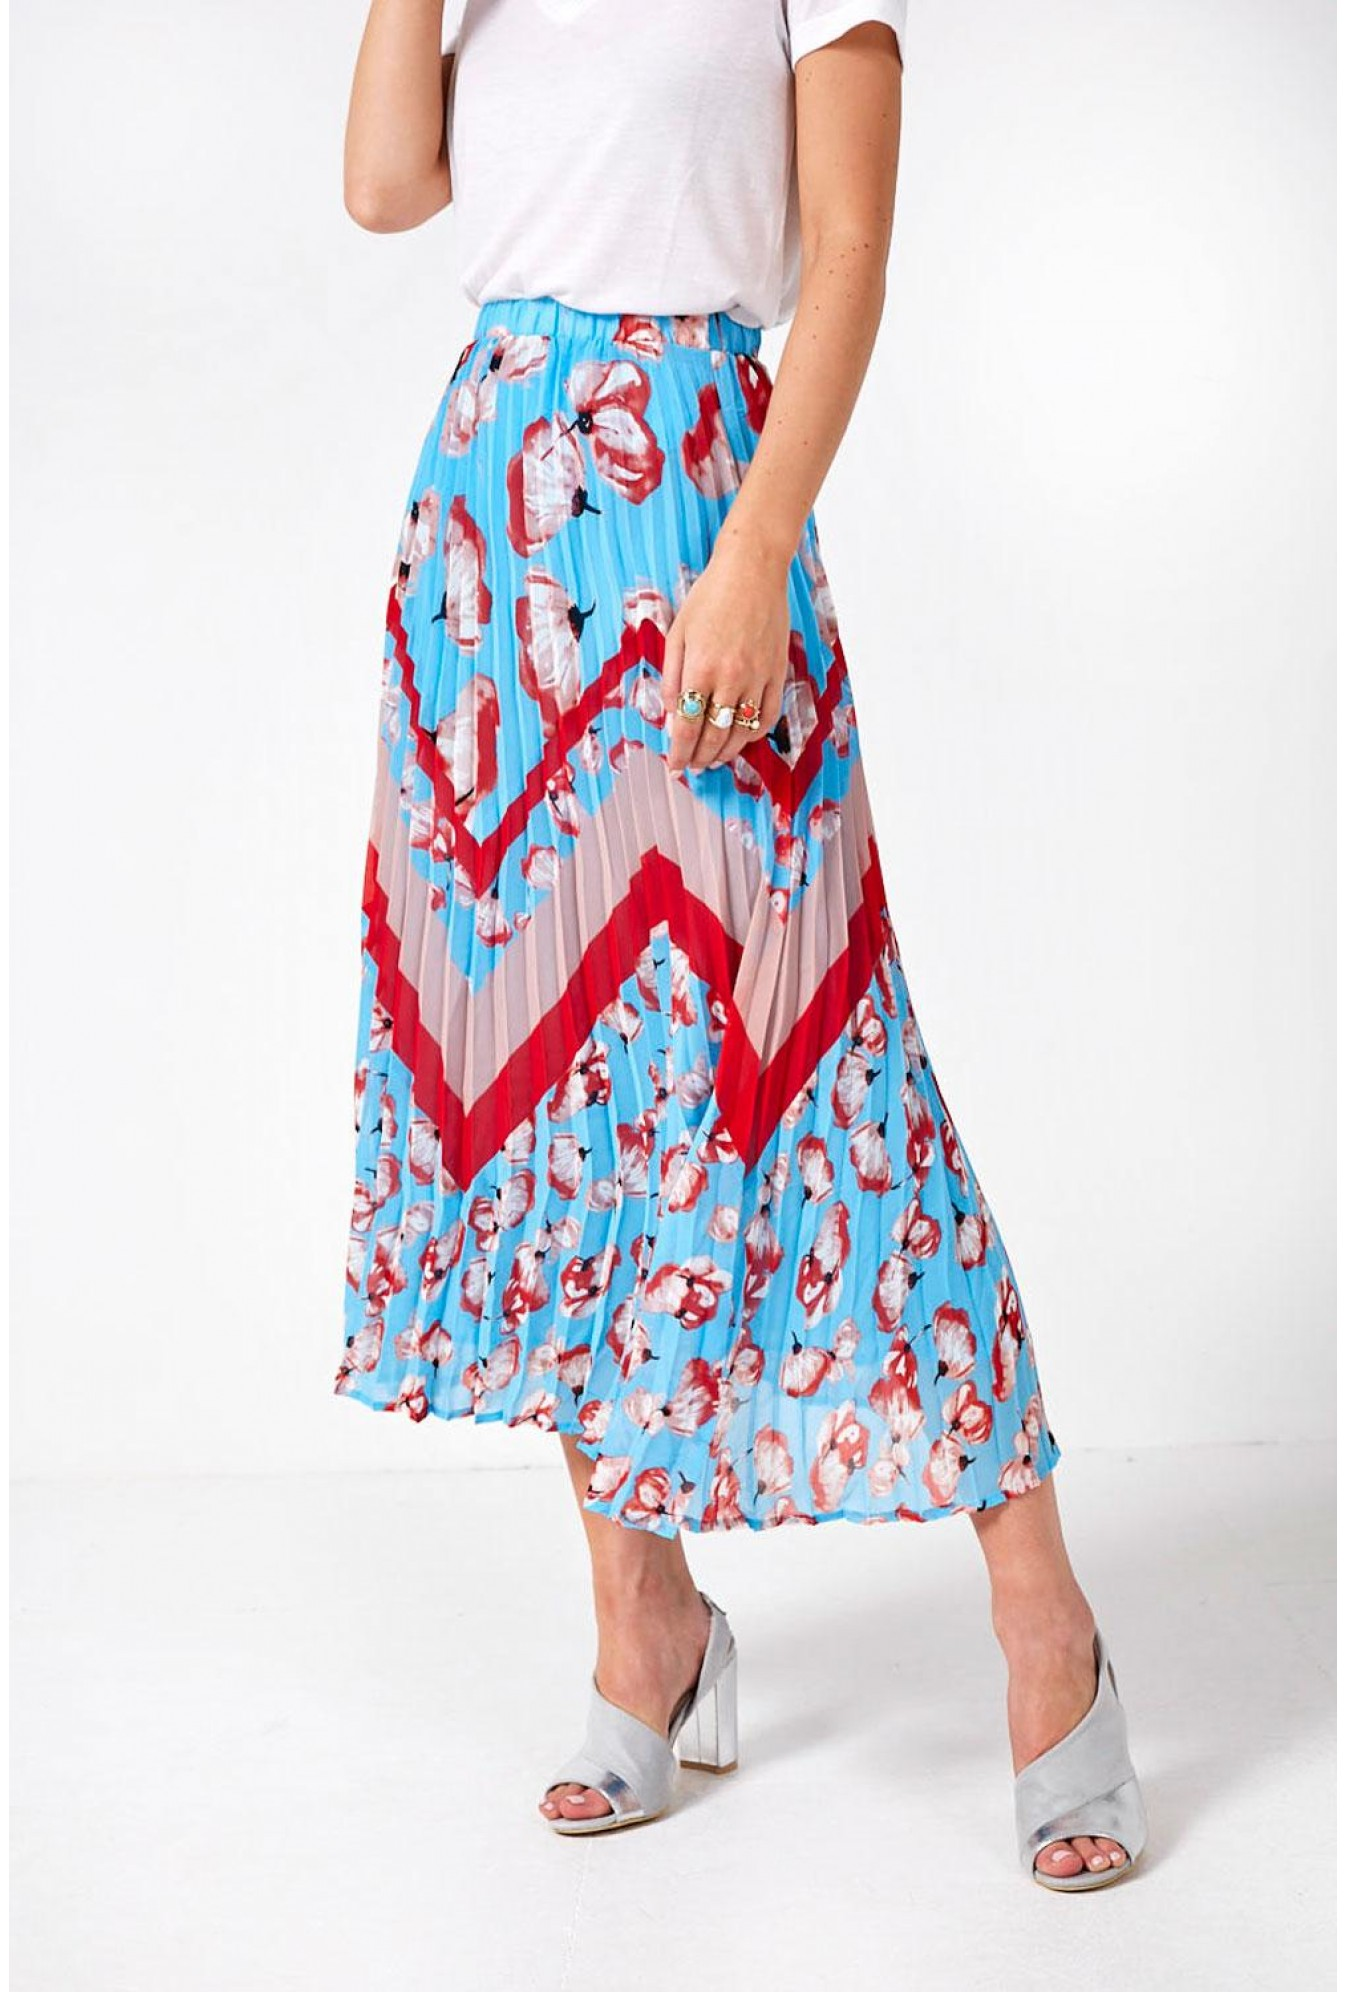 fff979504072 YAS Vamilla Floral Pleated Skirt in Sky Blue | iCLOTHING